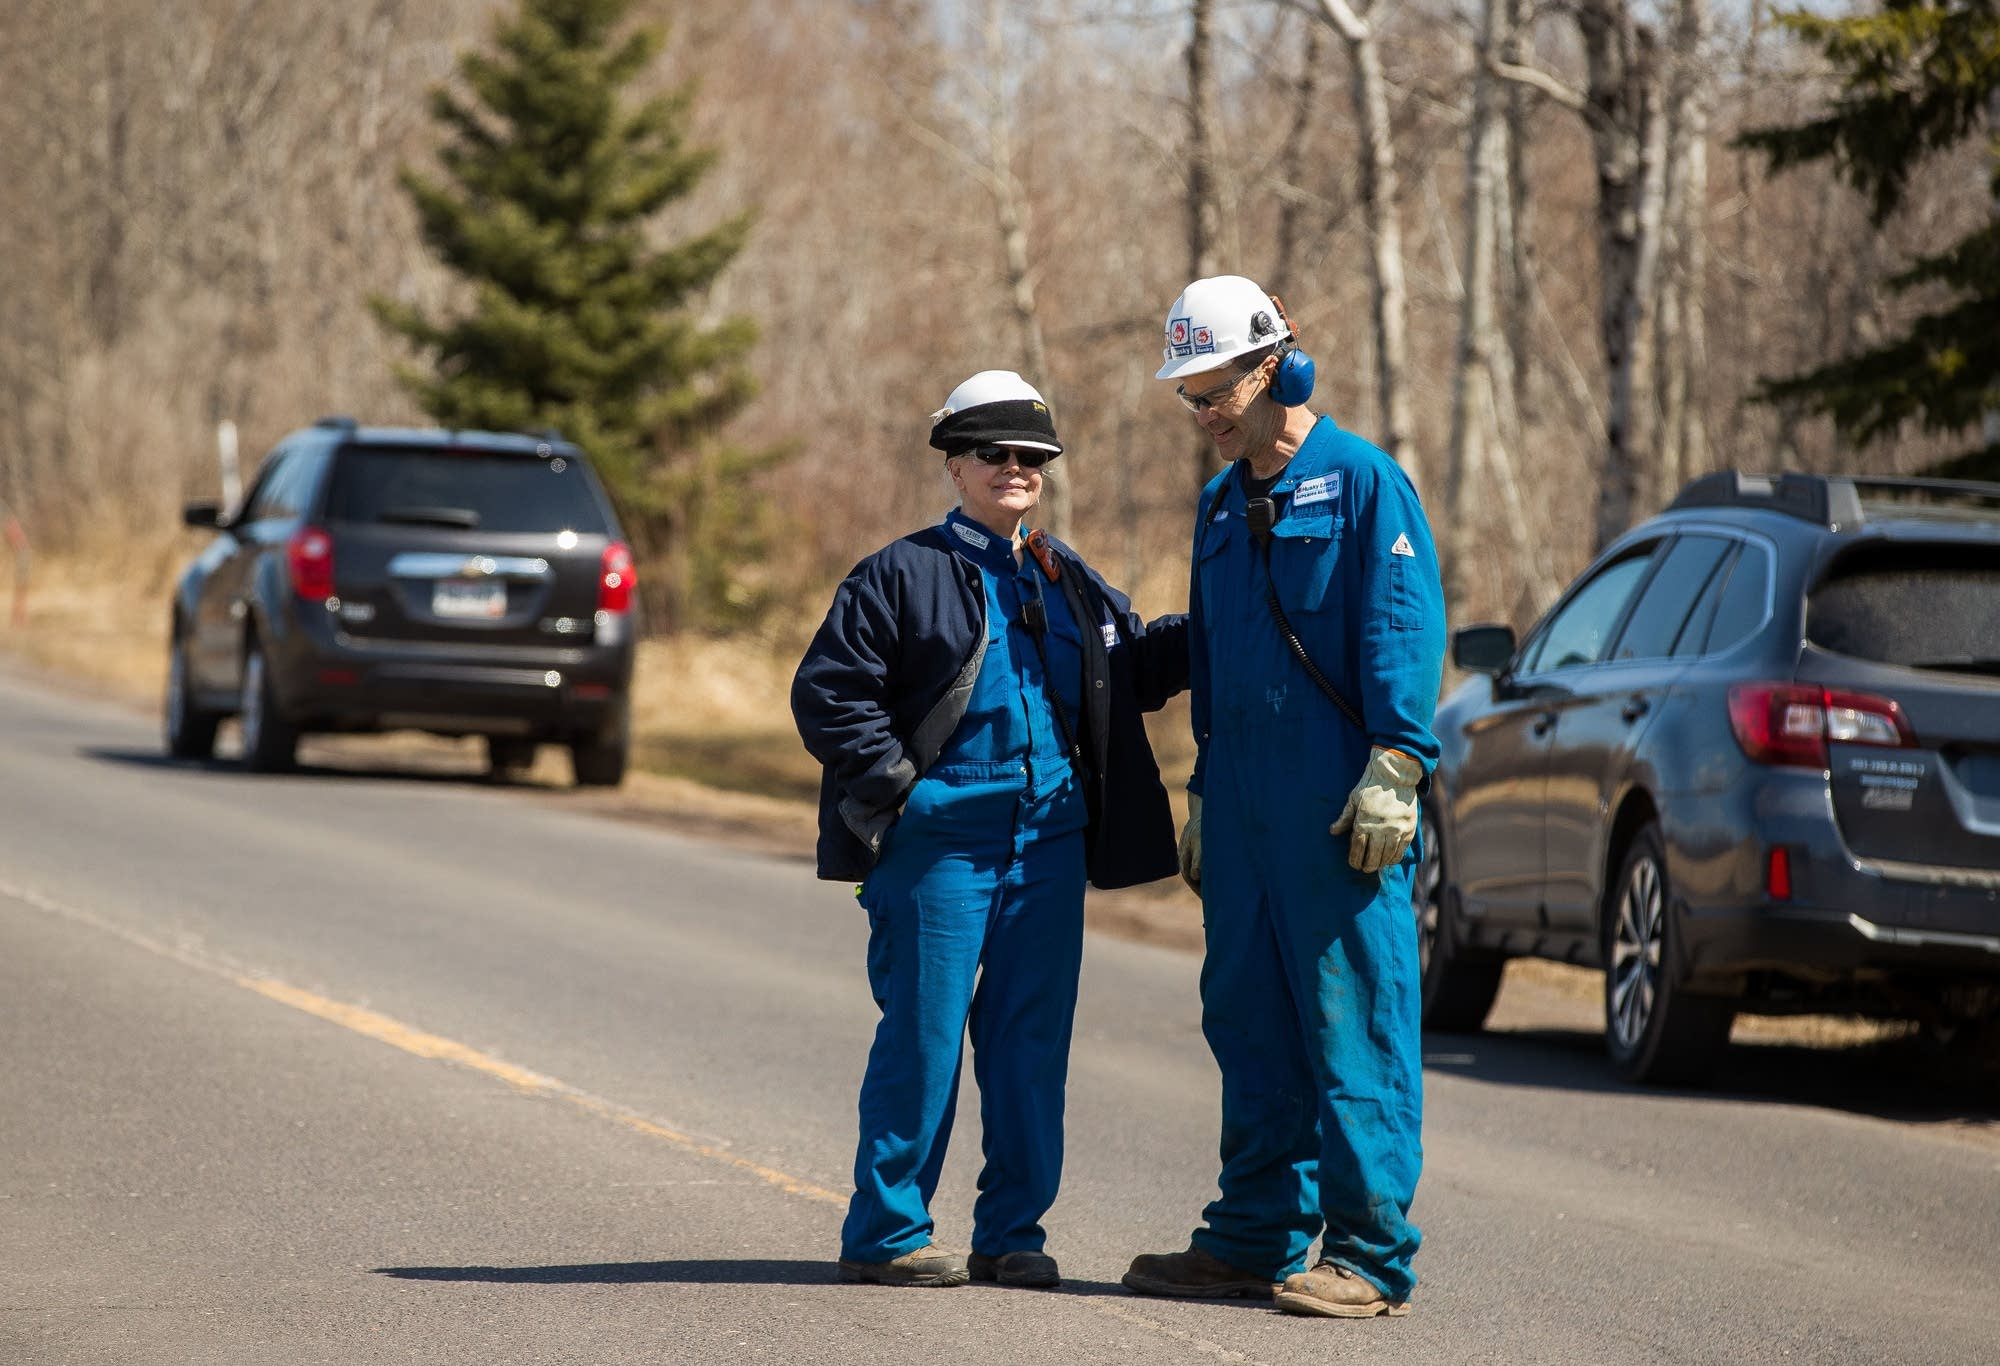 Workers from the Husky Energy oil refinery greet each other evacuating.